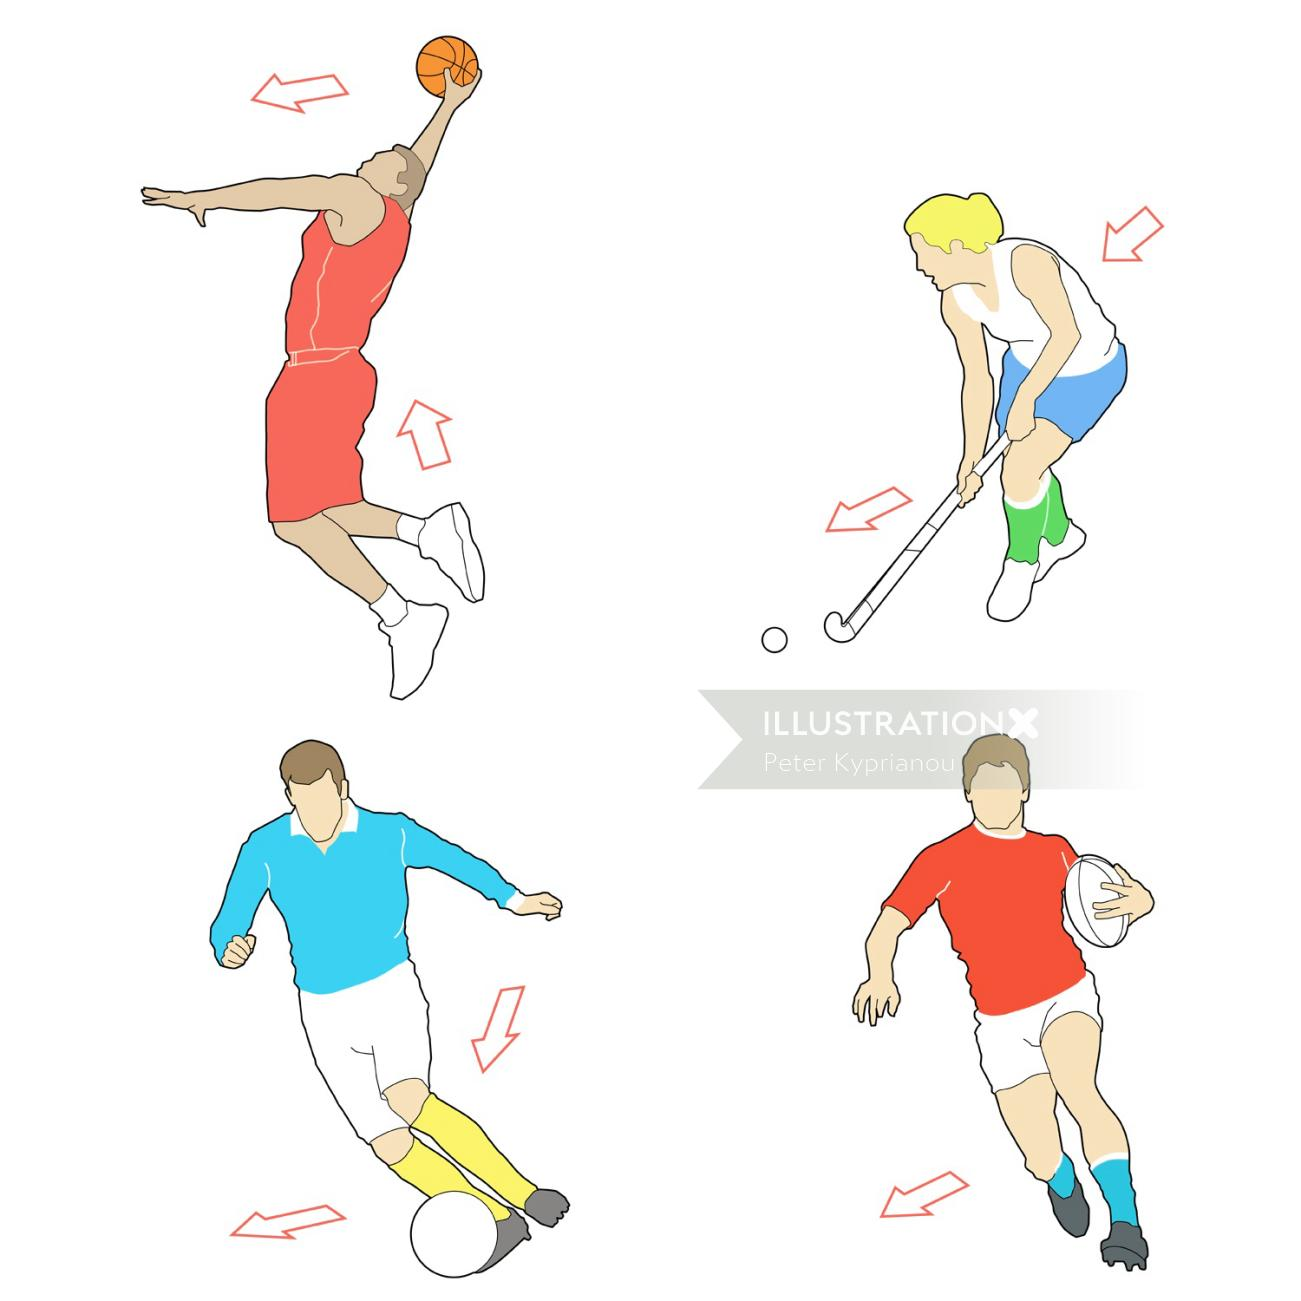 Vector art of sports icons design by Peter Kyprianou